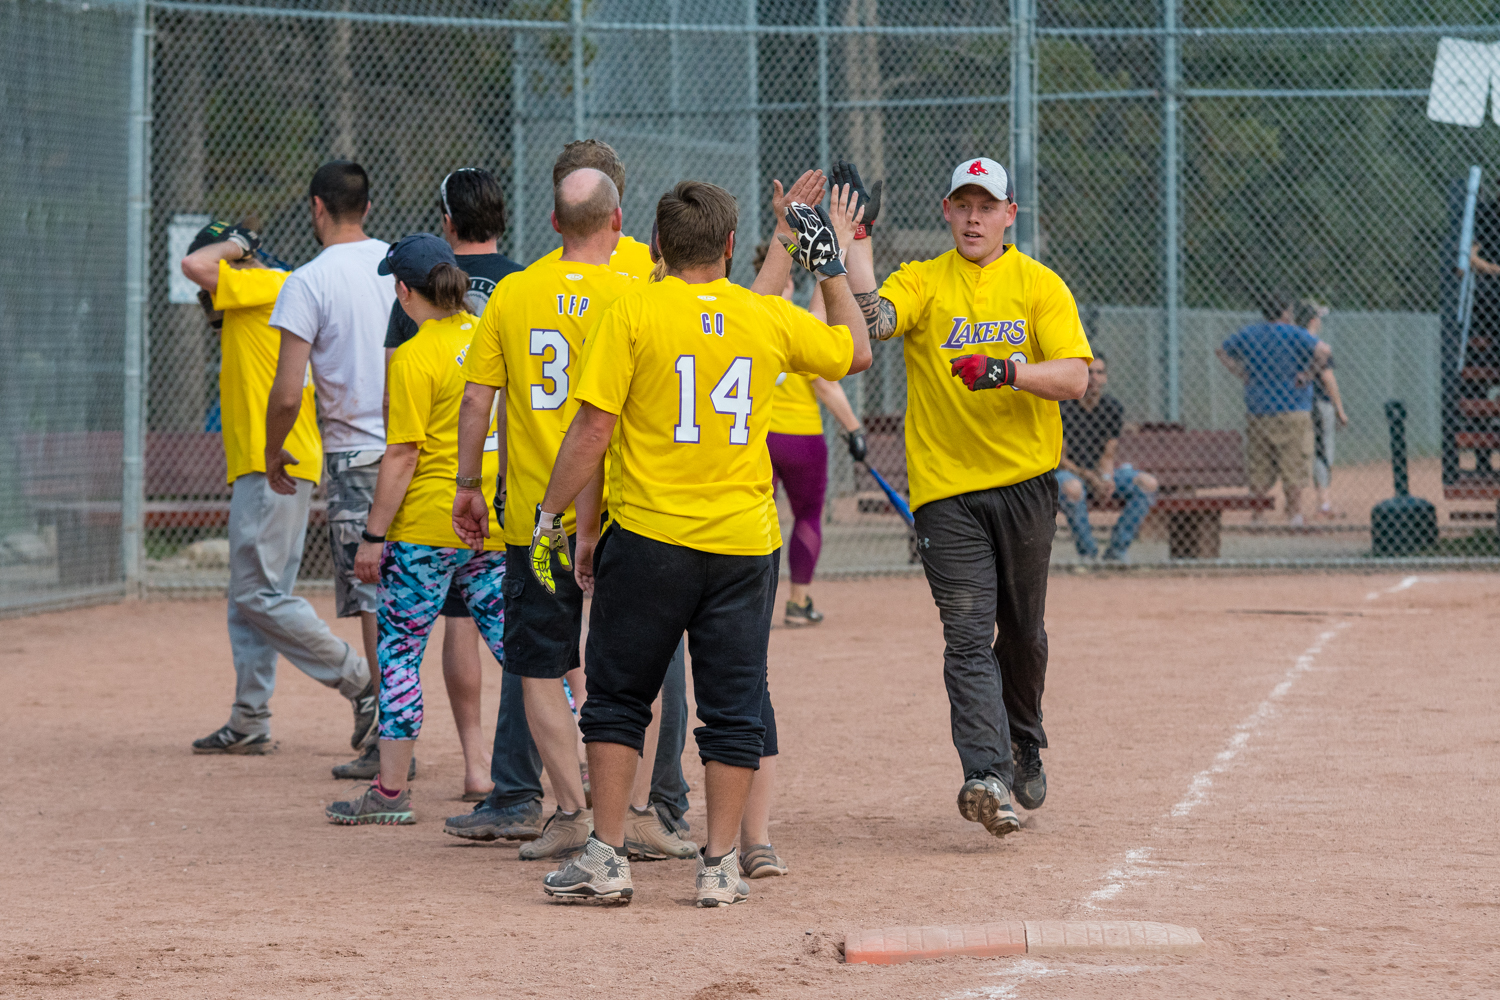 2017 08 23 Lakers vs Mud Trumpets-326.jpg